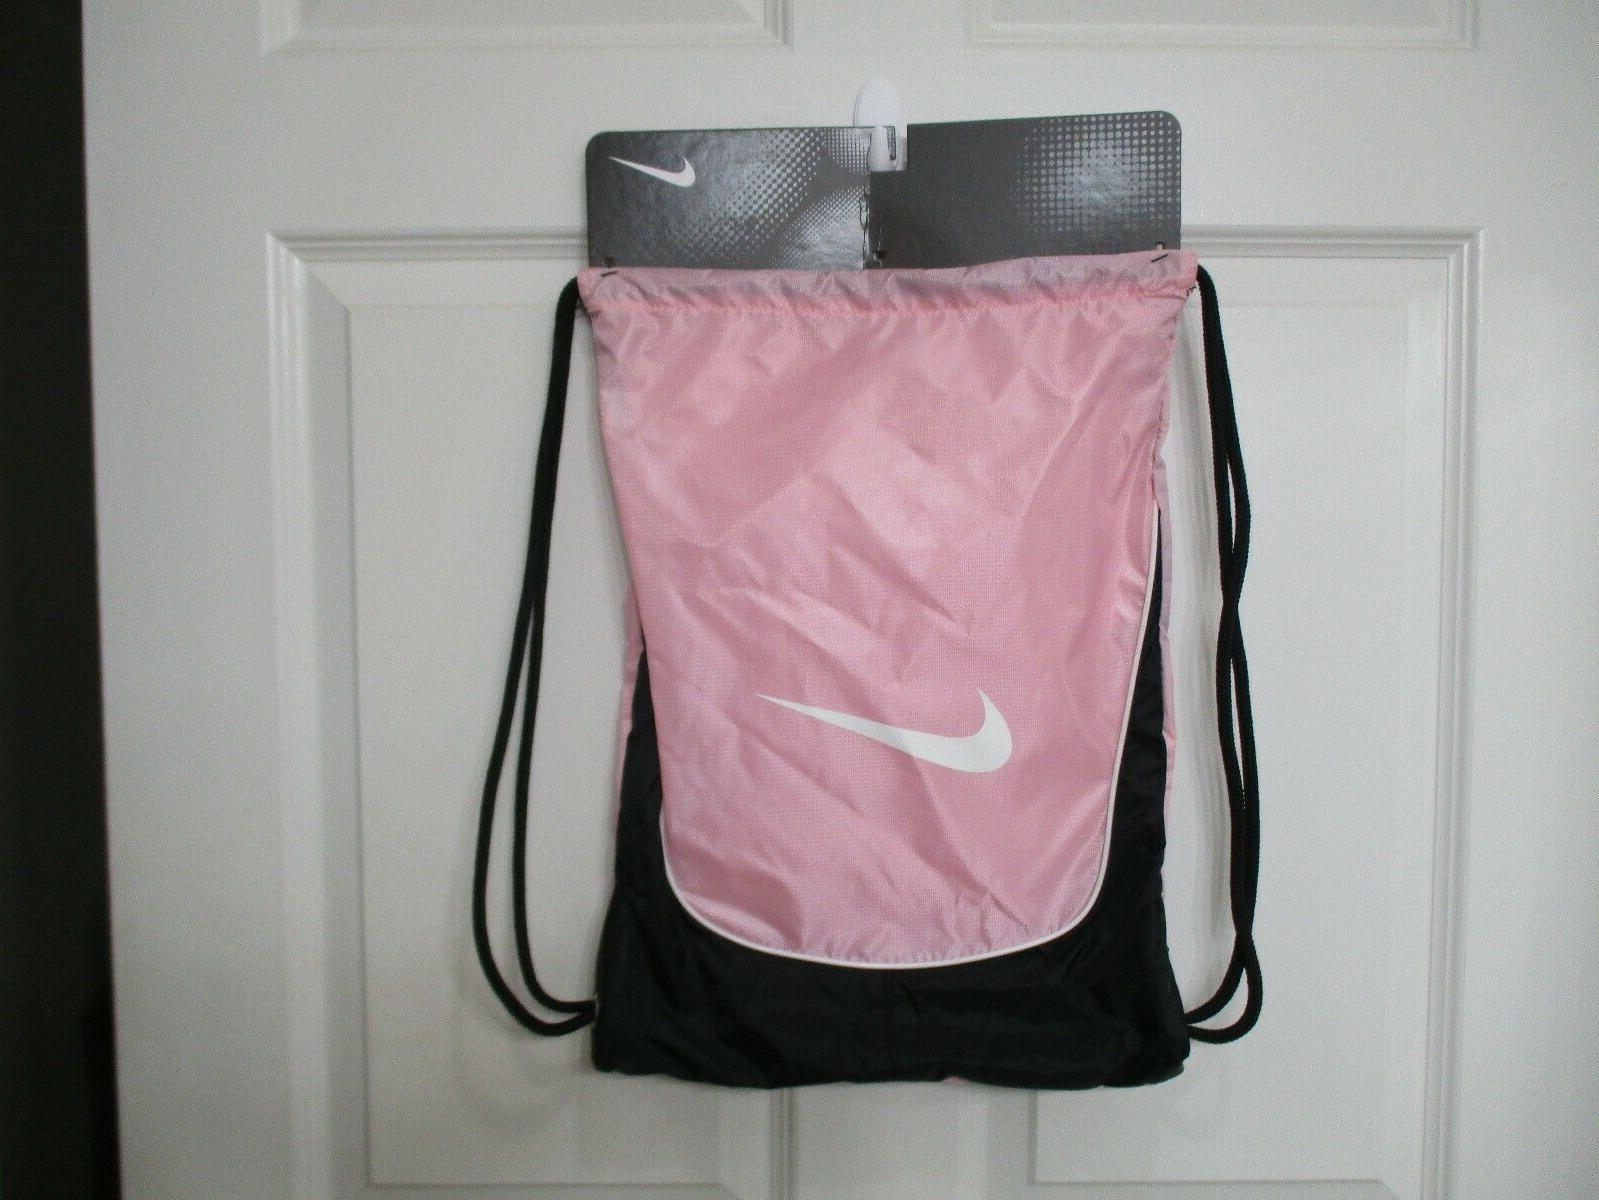 NIKE BRASILIA GYMSACK pink, black DRAWSTRING GYM BAG BACKPAC